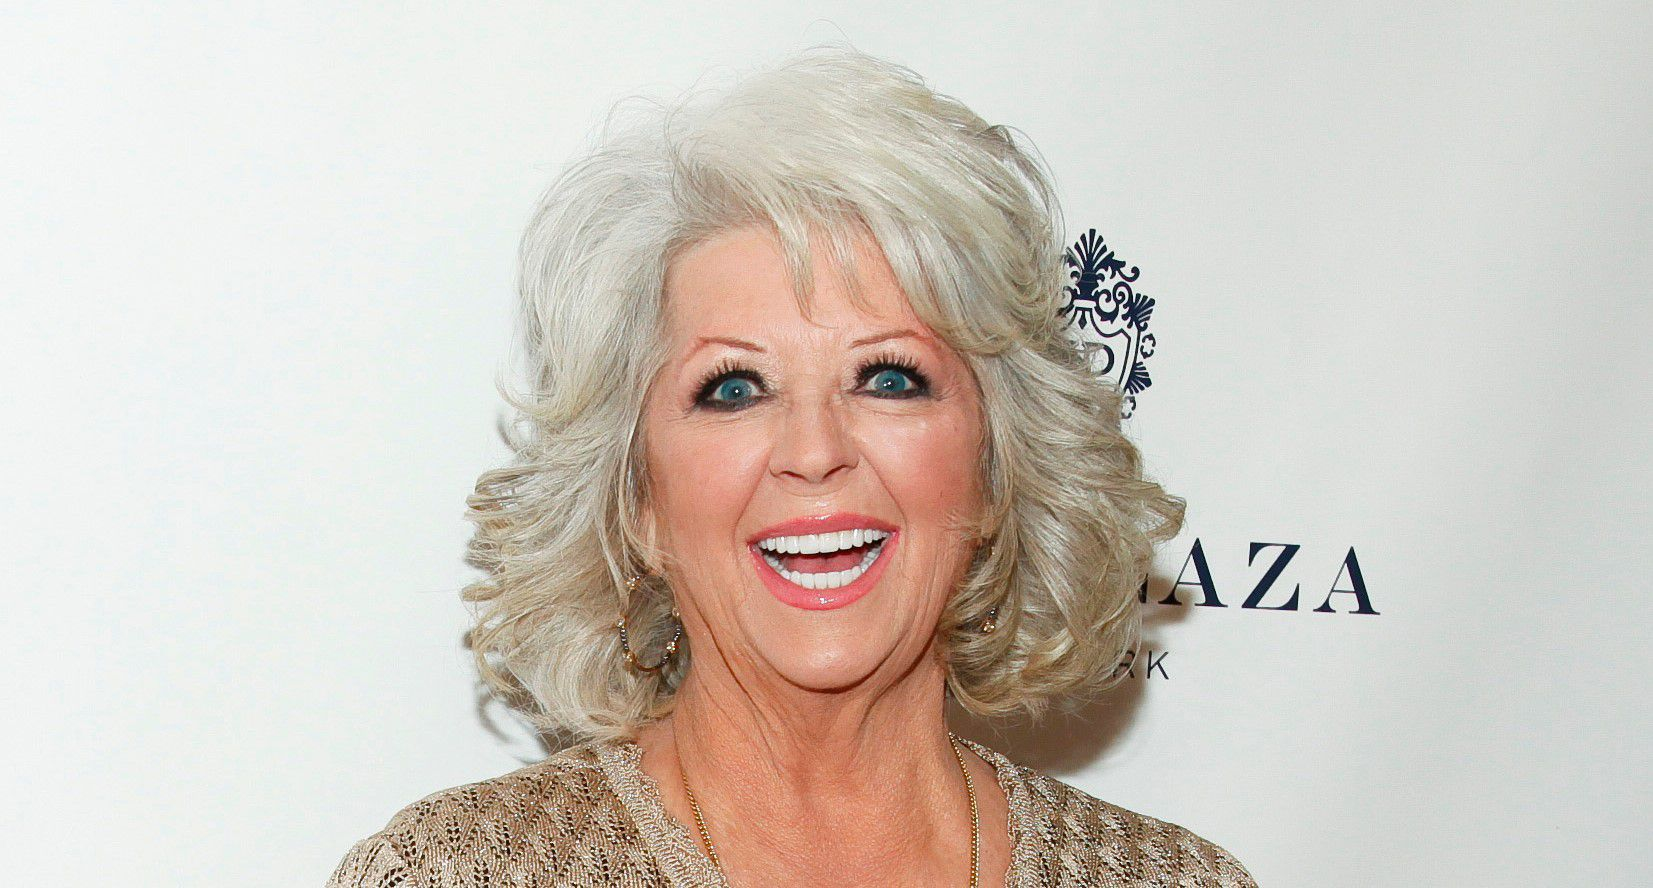 FILE - In this Feb. 13, 2015 file photo, TV personality Paula Deen attends the EVINE Live launch event in New York.  Companies take a risk when tying their names to real-life people they have little control over. The celebrity cook known for her rich Southern dishes came under fire after she acknowledged using racial slurs in the past during a deposition. After the remarks came to light, the Food Network pulled her show off the air and said it wouldn't renew her contract.   (Photo by Andy Kropa/Invision/AP, File) 08202015xPUB 09032015xPUB